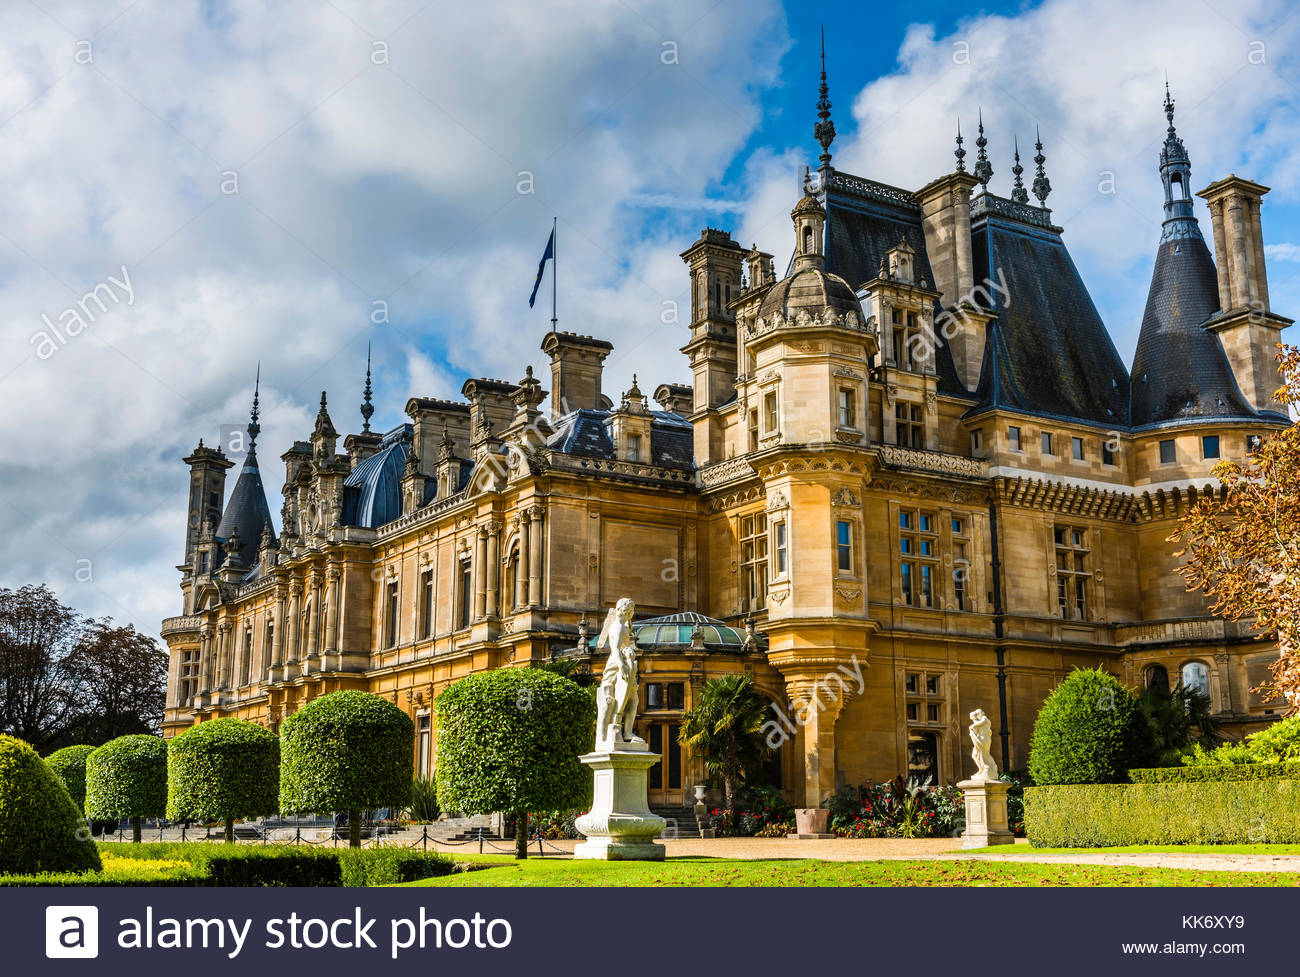 French-style chateau at Waddesdon Manor, Buckinghamshire, UK - Stock Image